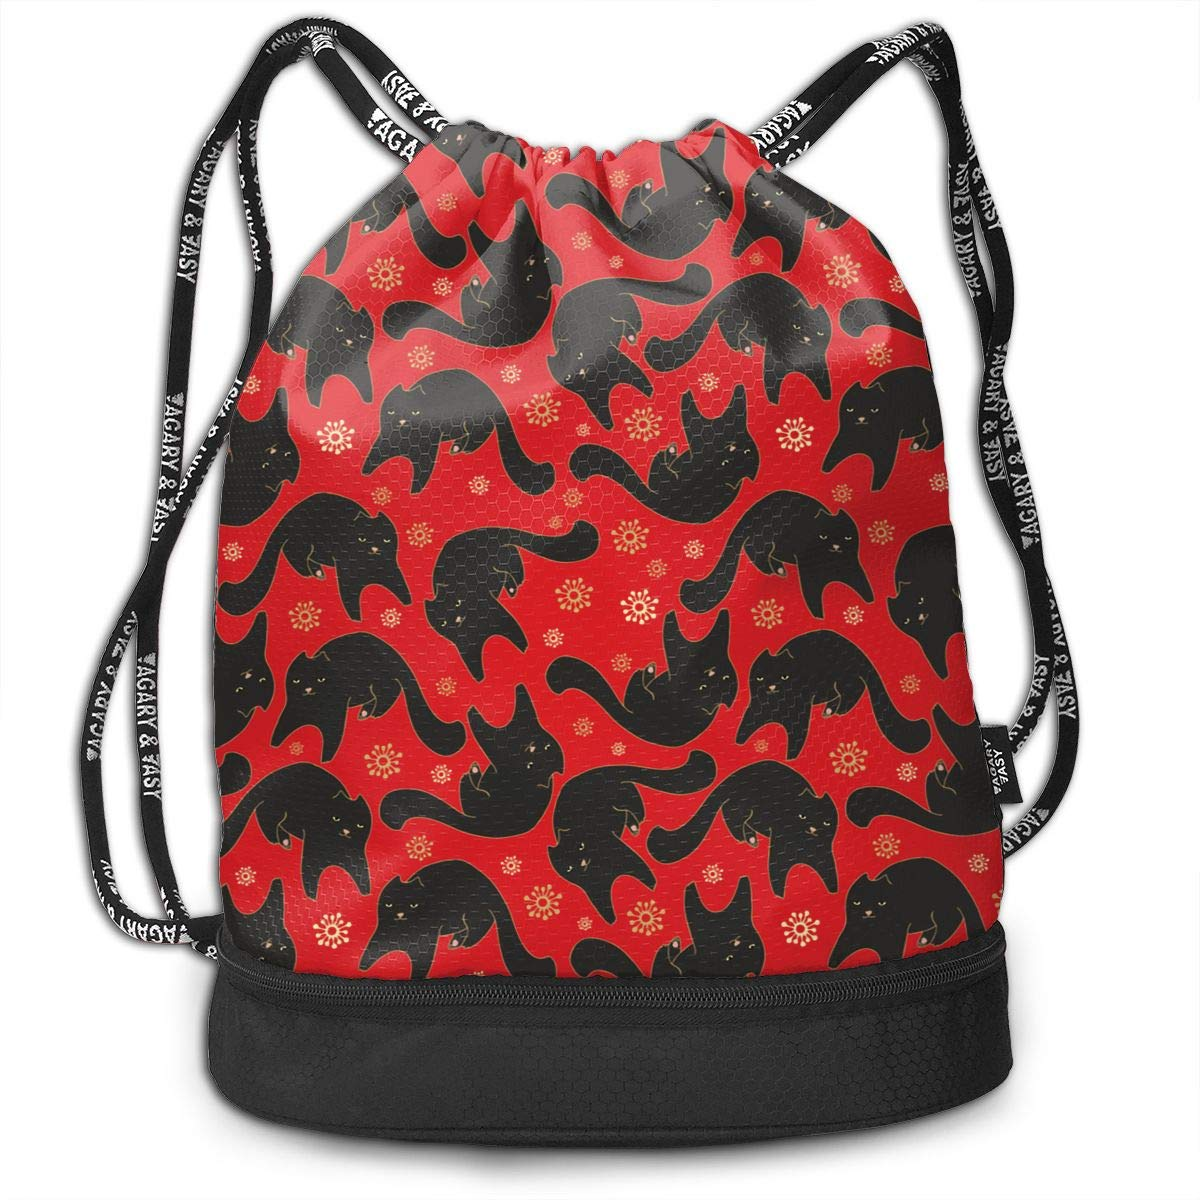 Black One Size Drawstring Backpack Cats Pattern Shoulder Bags